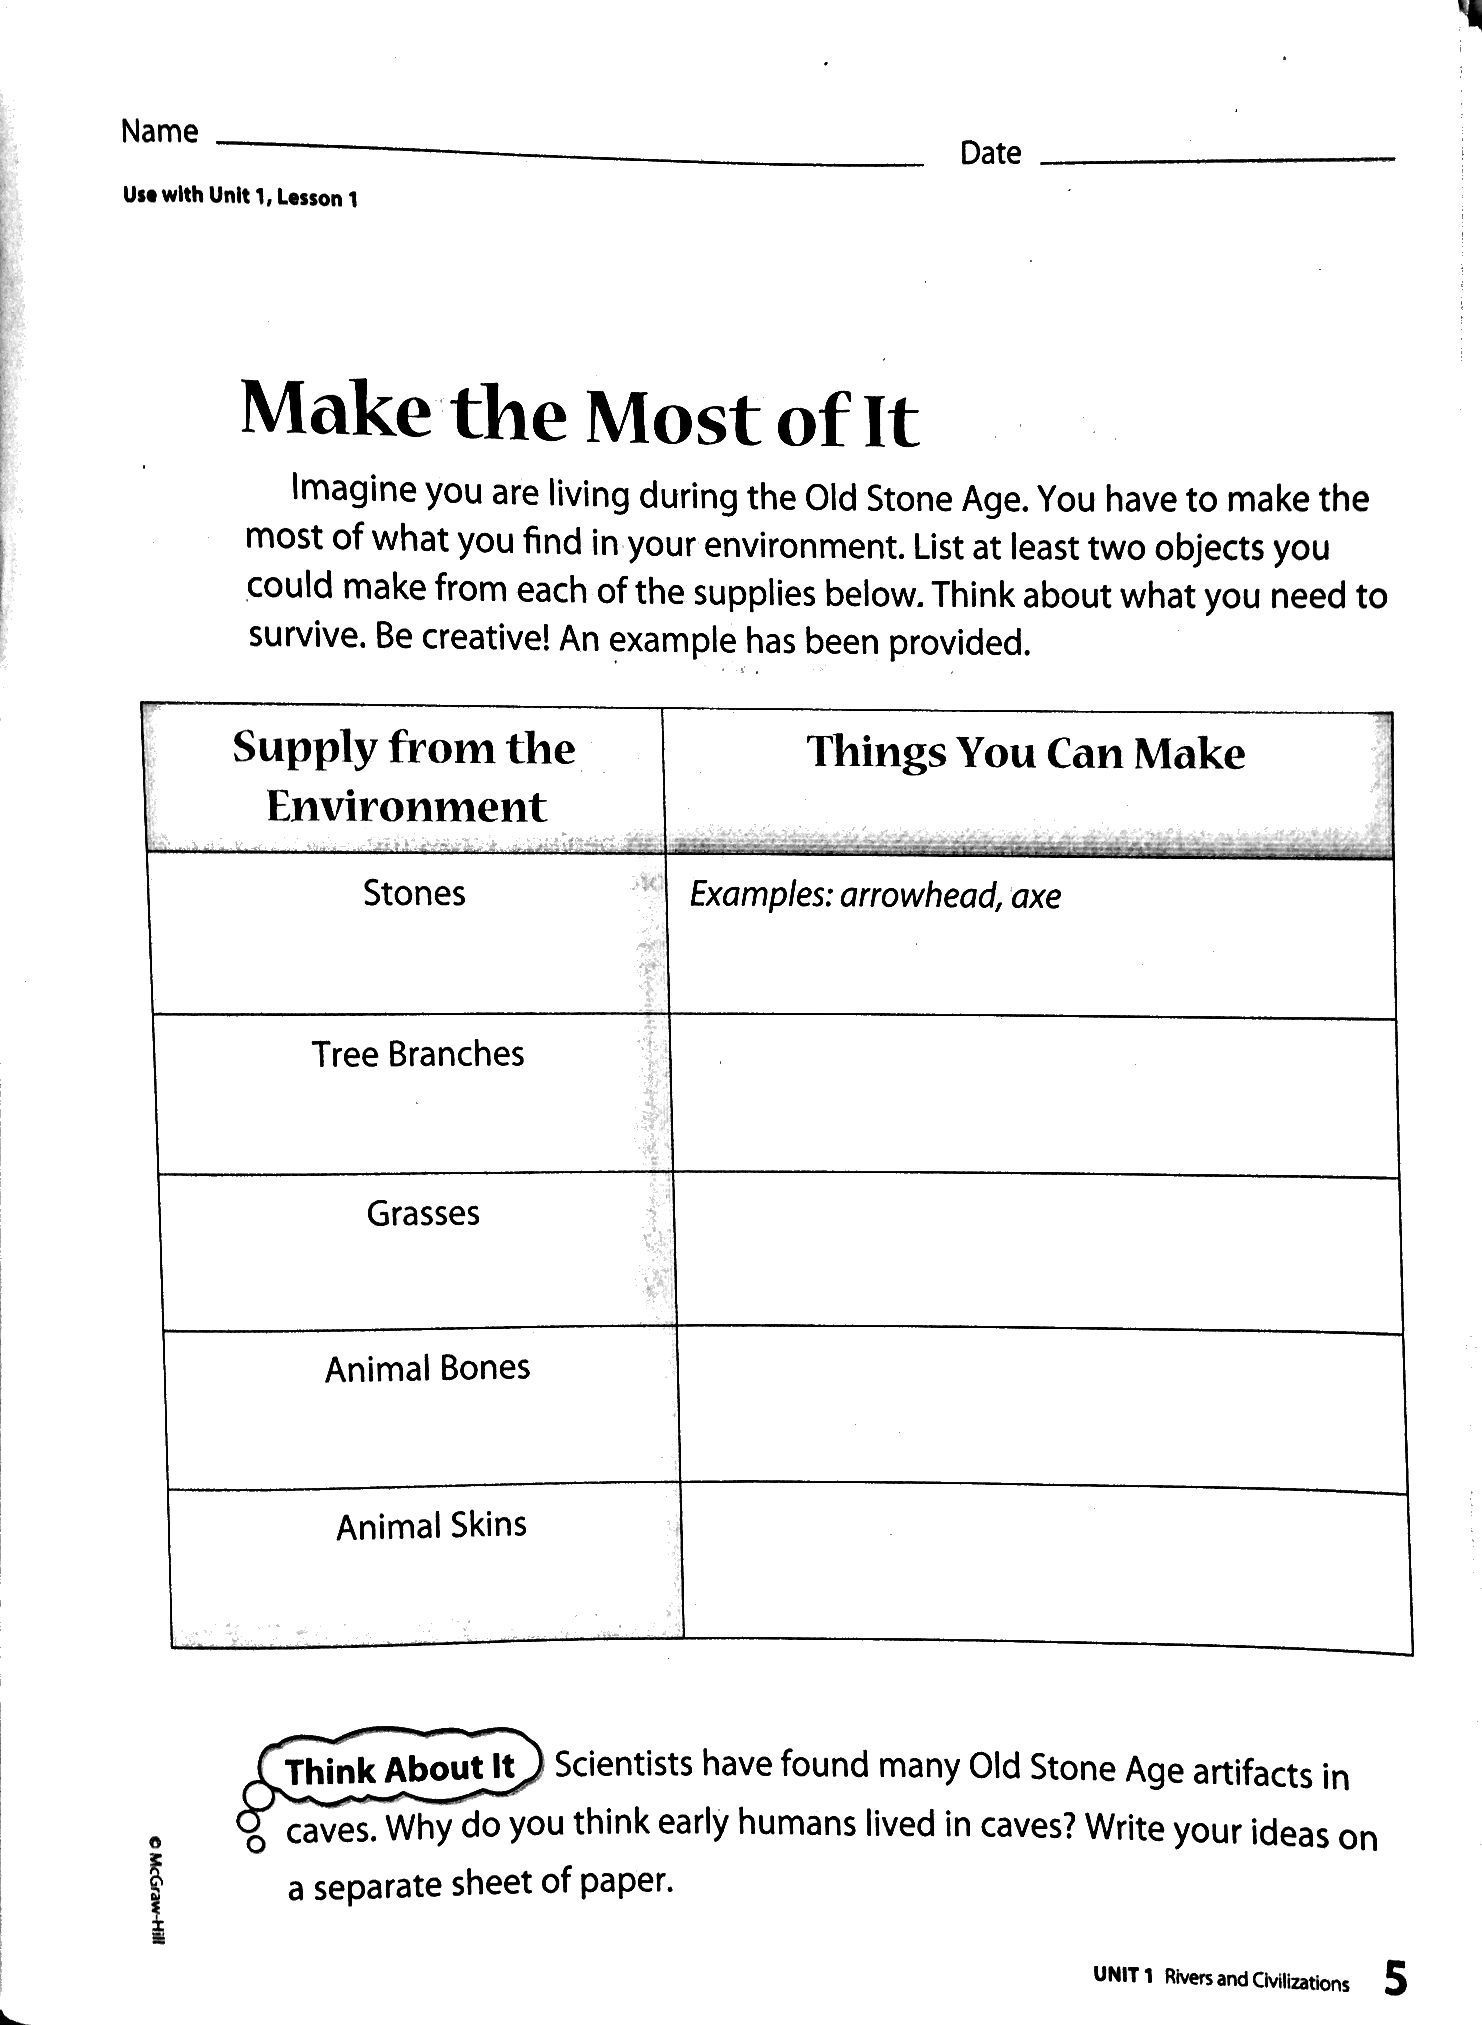 Chapter 1 Early People 6th Grade Worksheets Lesson Plans Chapter